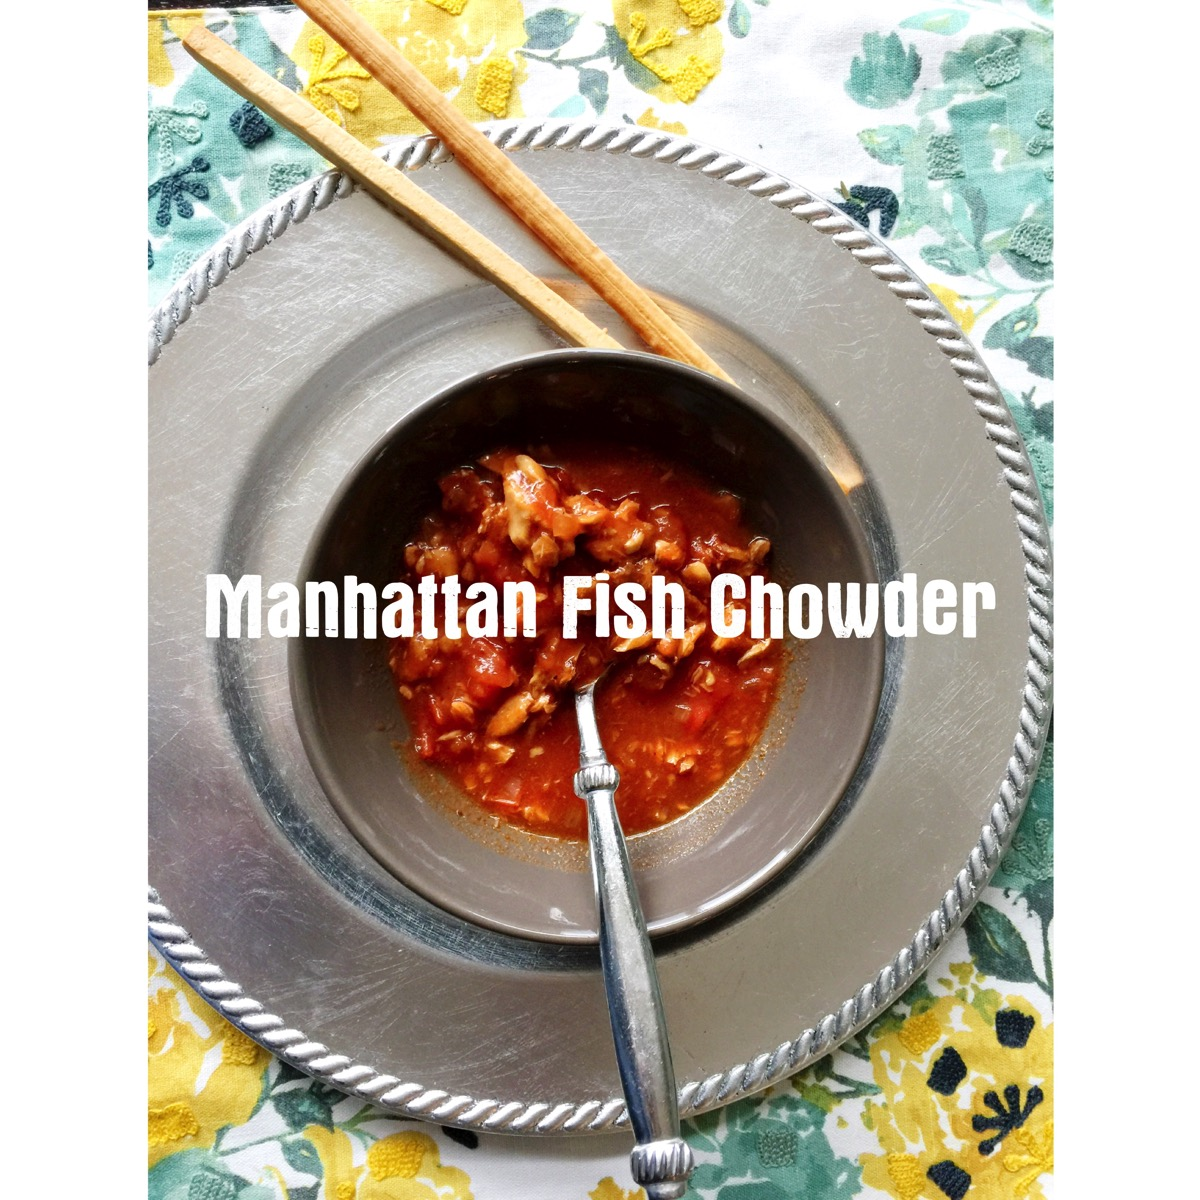 Manhattan Fish Chowder WhatMattersMostnow.typepad.com